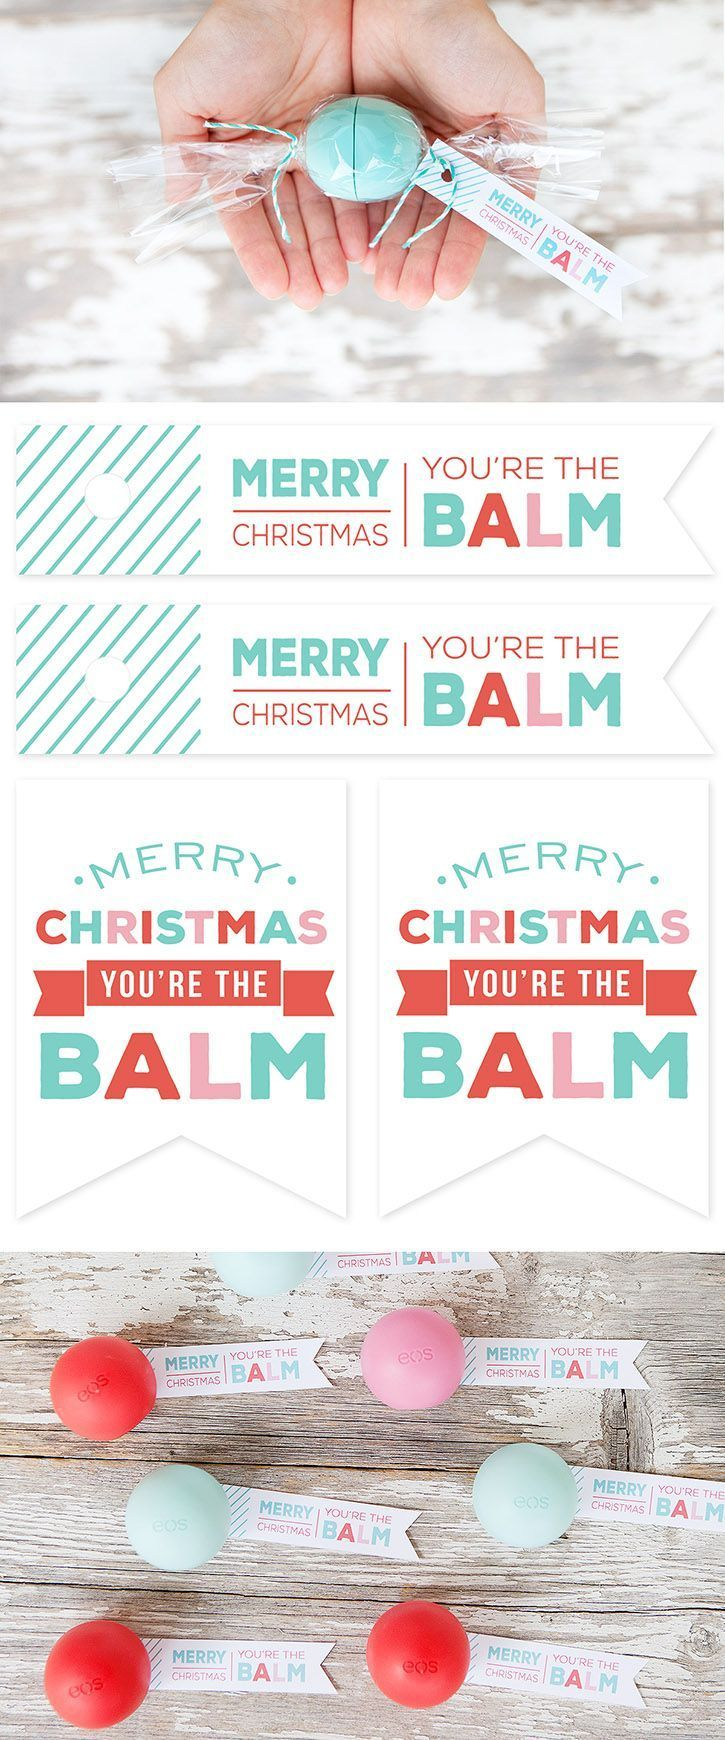 Eos lip balm candies and free printable gift tags inexpensive eos lip balm candies and free printable gift tags simple and inexpensive christmas gift idea for friends tweens teachers negle Image collections